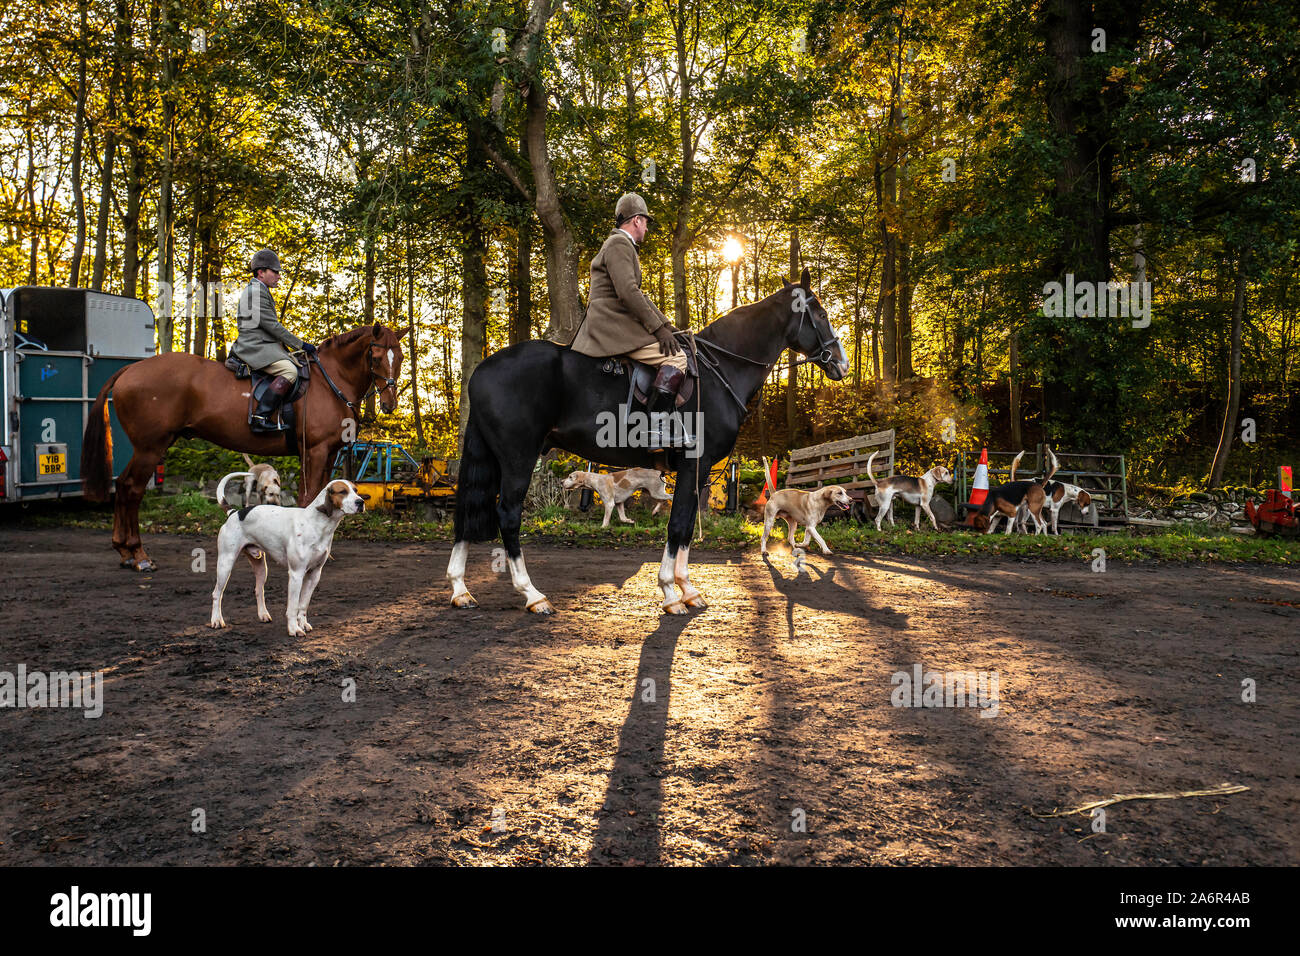 Floors Castle, Kelso, Scottish Borders, UK. 28th October 2019. The Duke of Buccleuch foxhounds flush foxes to guns in the grounds of the Floors Castle at Kelso, home to the Duke of Roxburghe. Credit: Chris Strickland / Alamy Live News Stock Photo